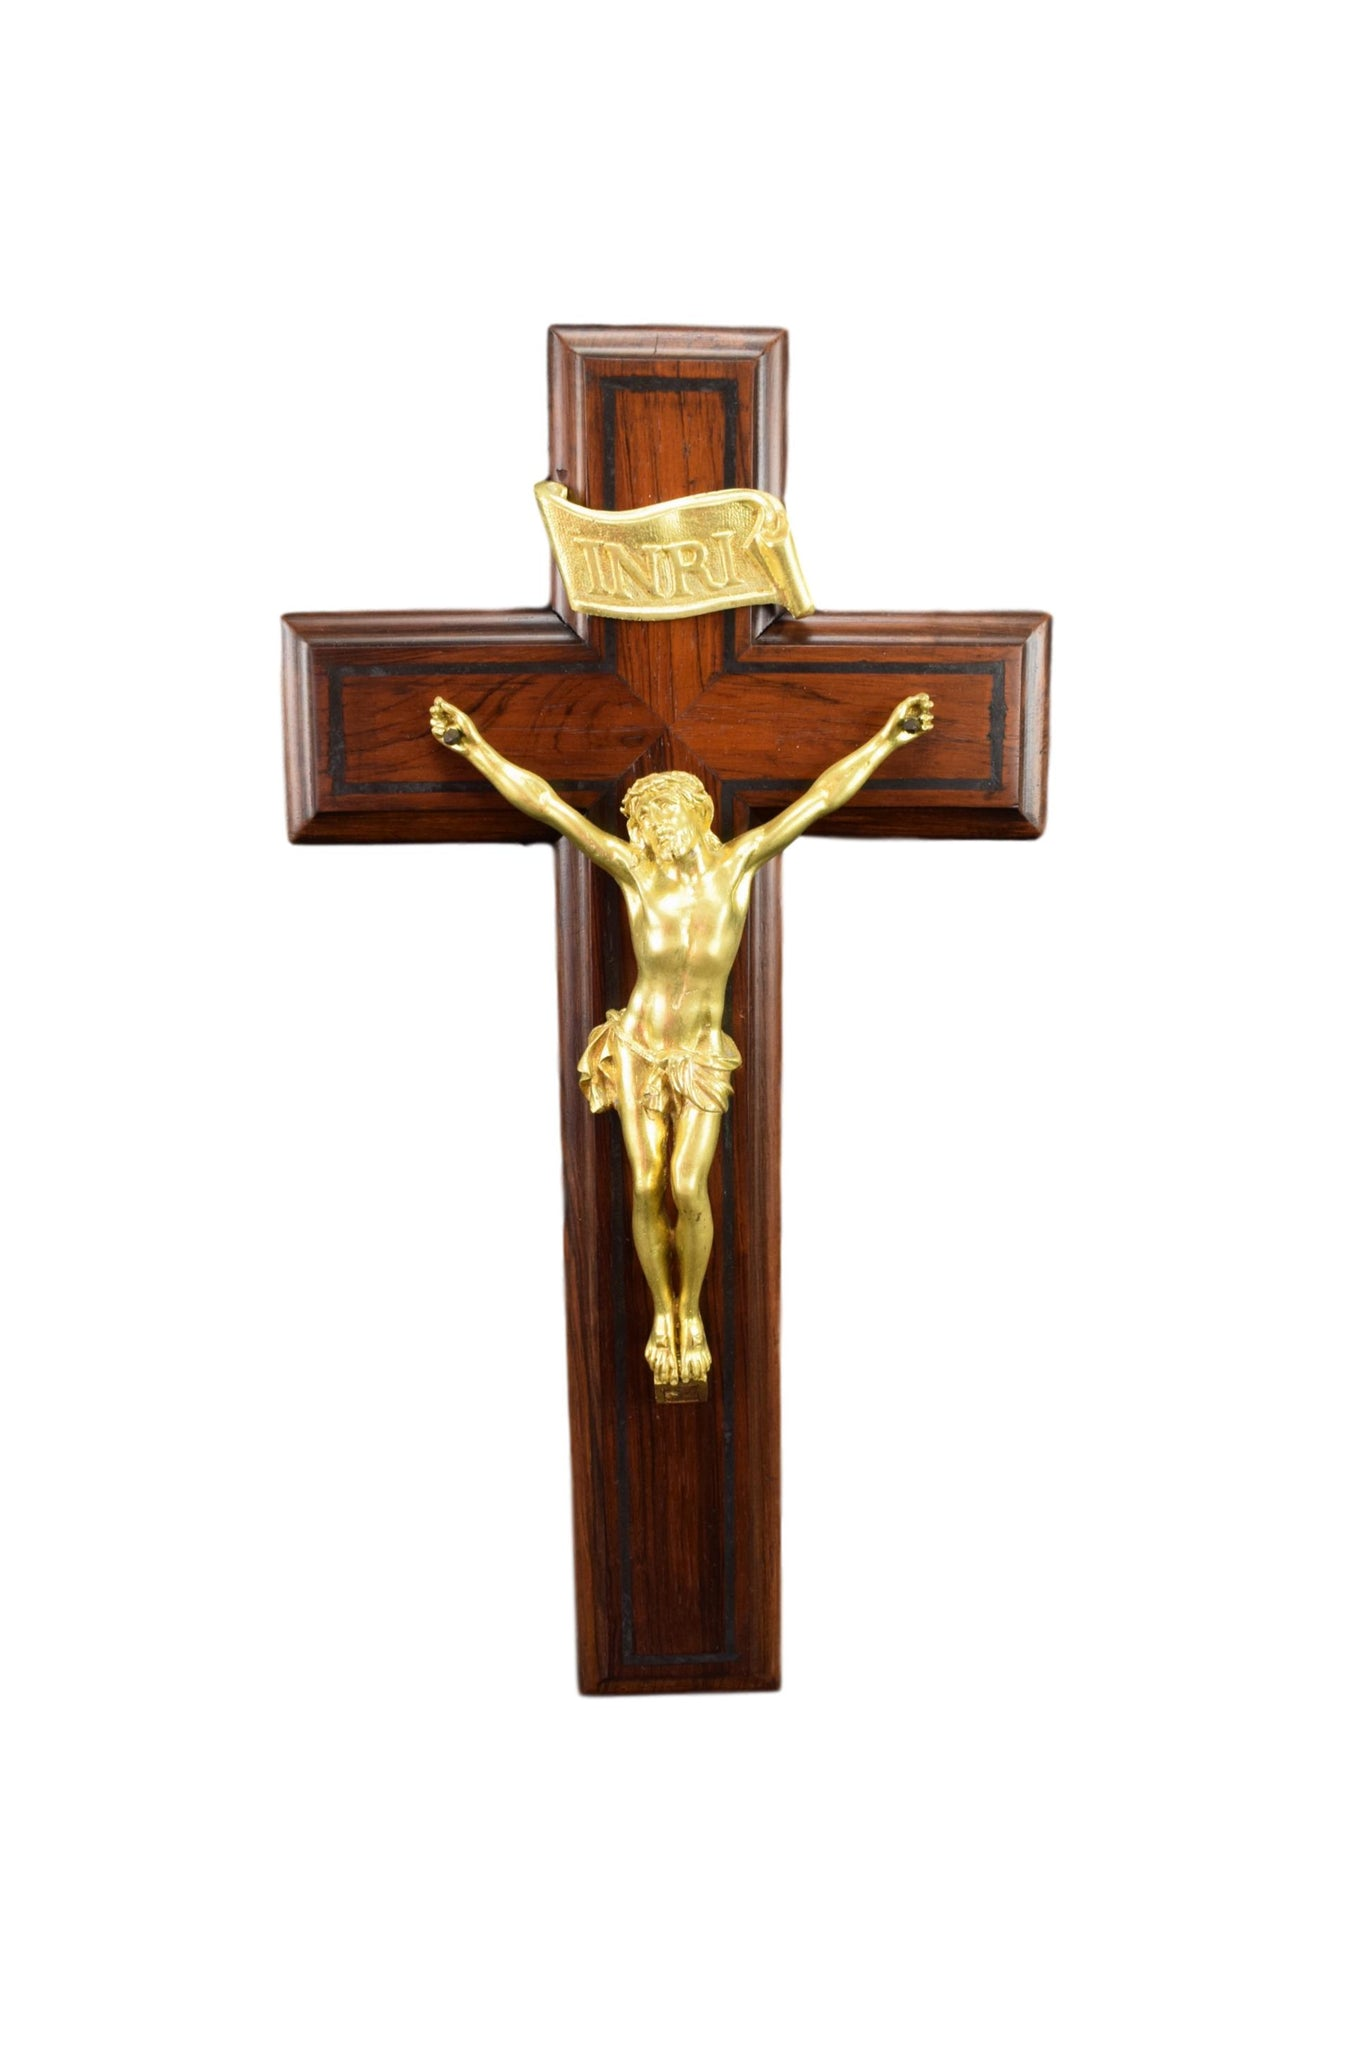 French Art Deco Large Bronze and Wood Wall Cross Crucifix